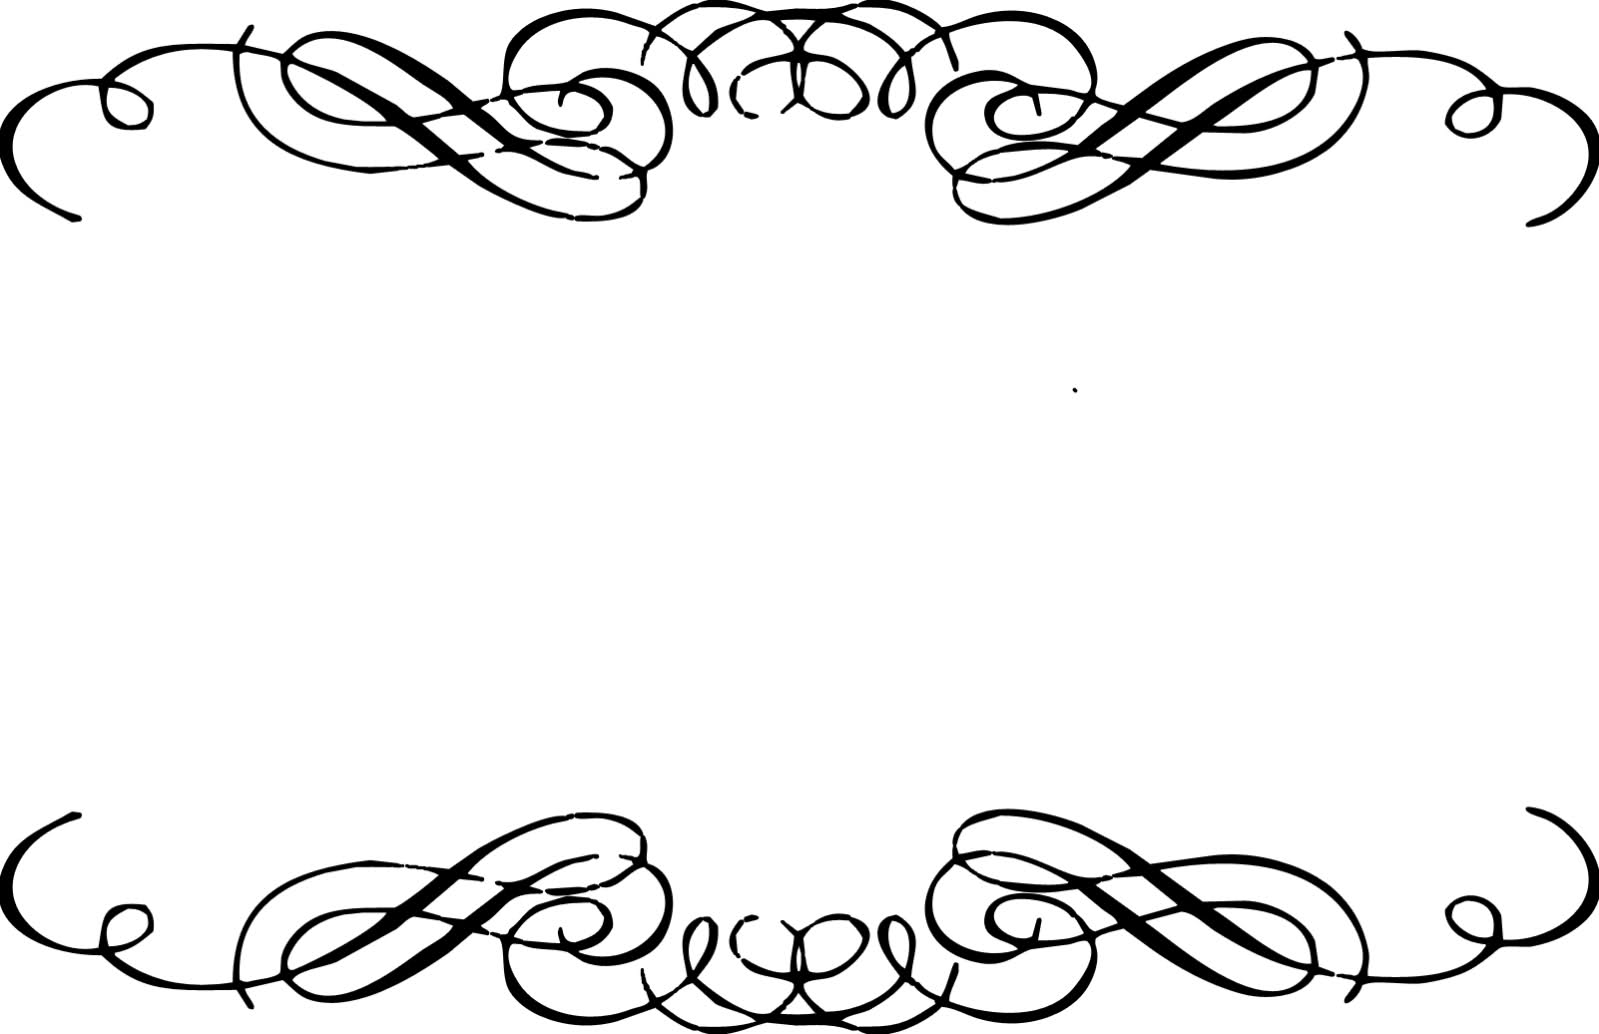 Free Decorative Designs Cliparts, Download Free Clip Art.